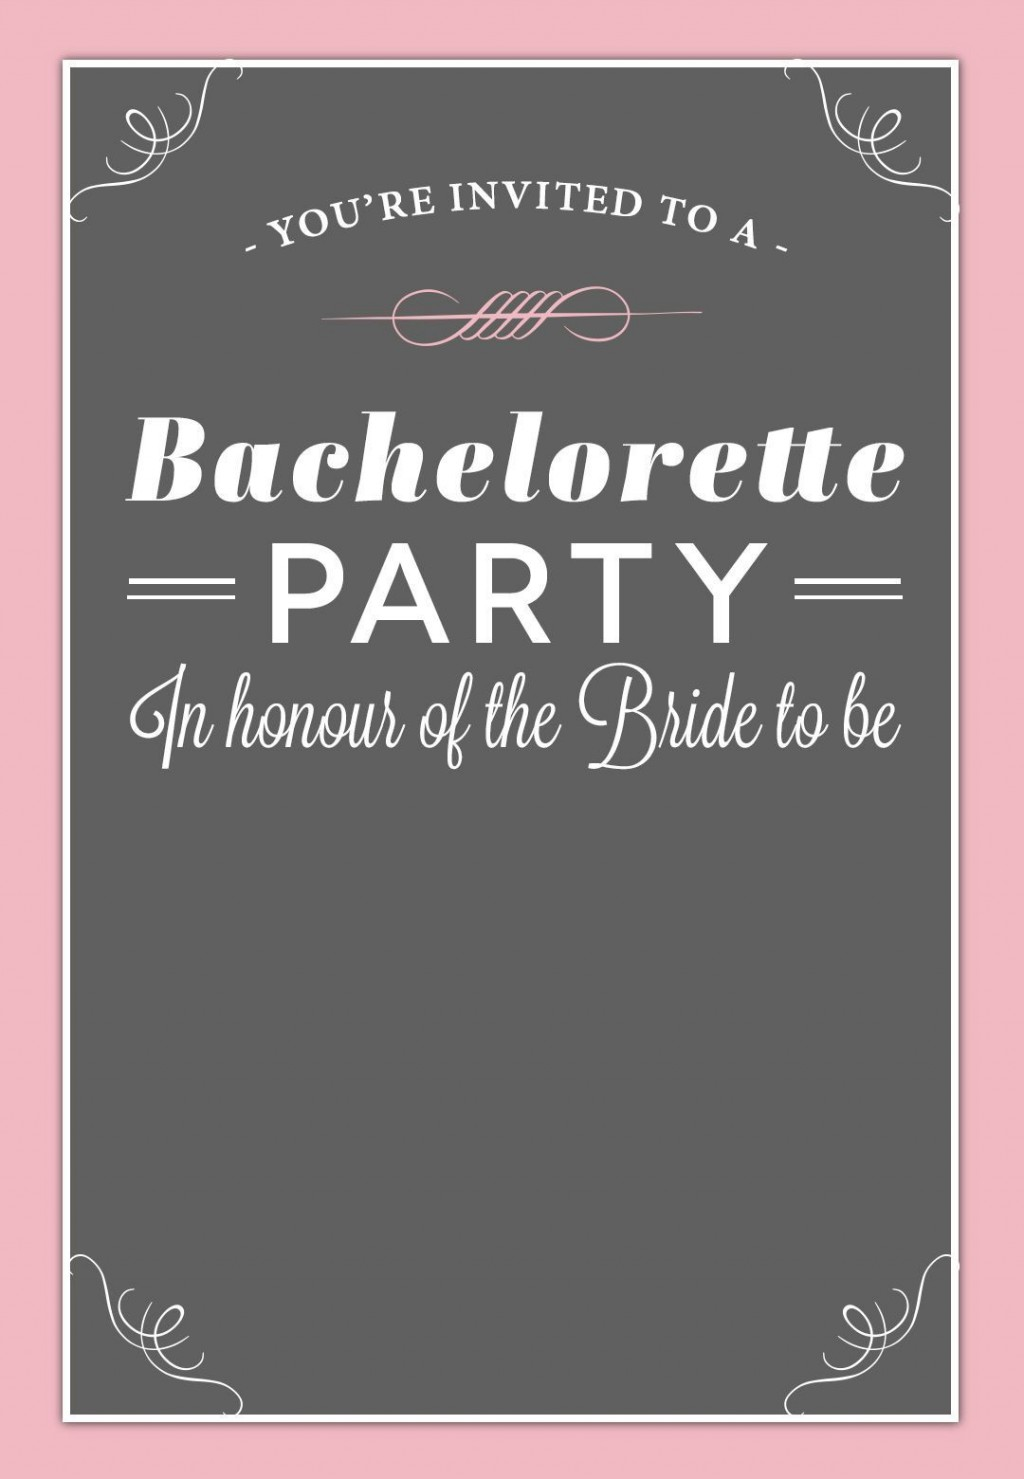 002 Best Bachelorette Party Invitation Template Word Free Design Large